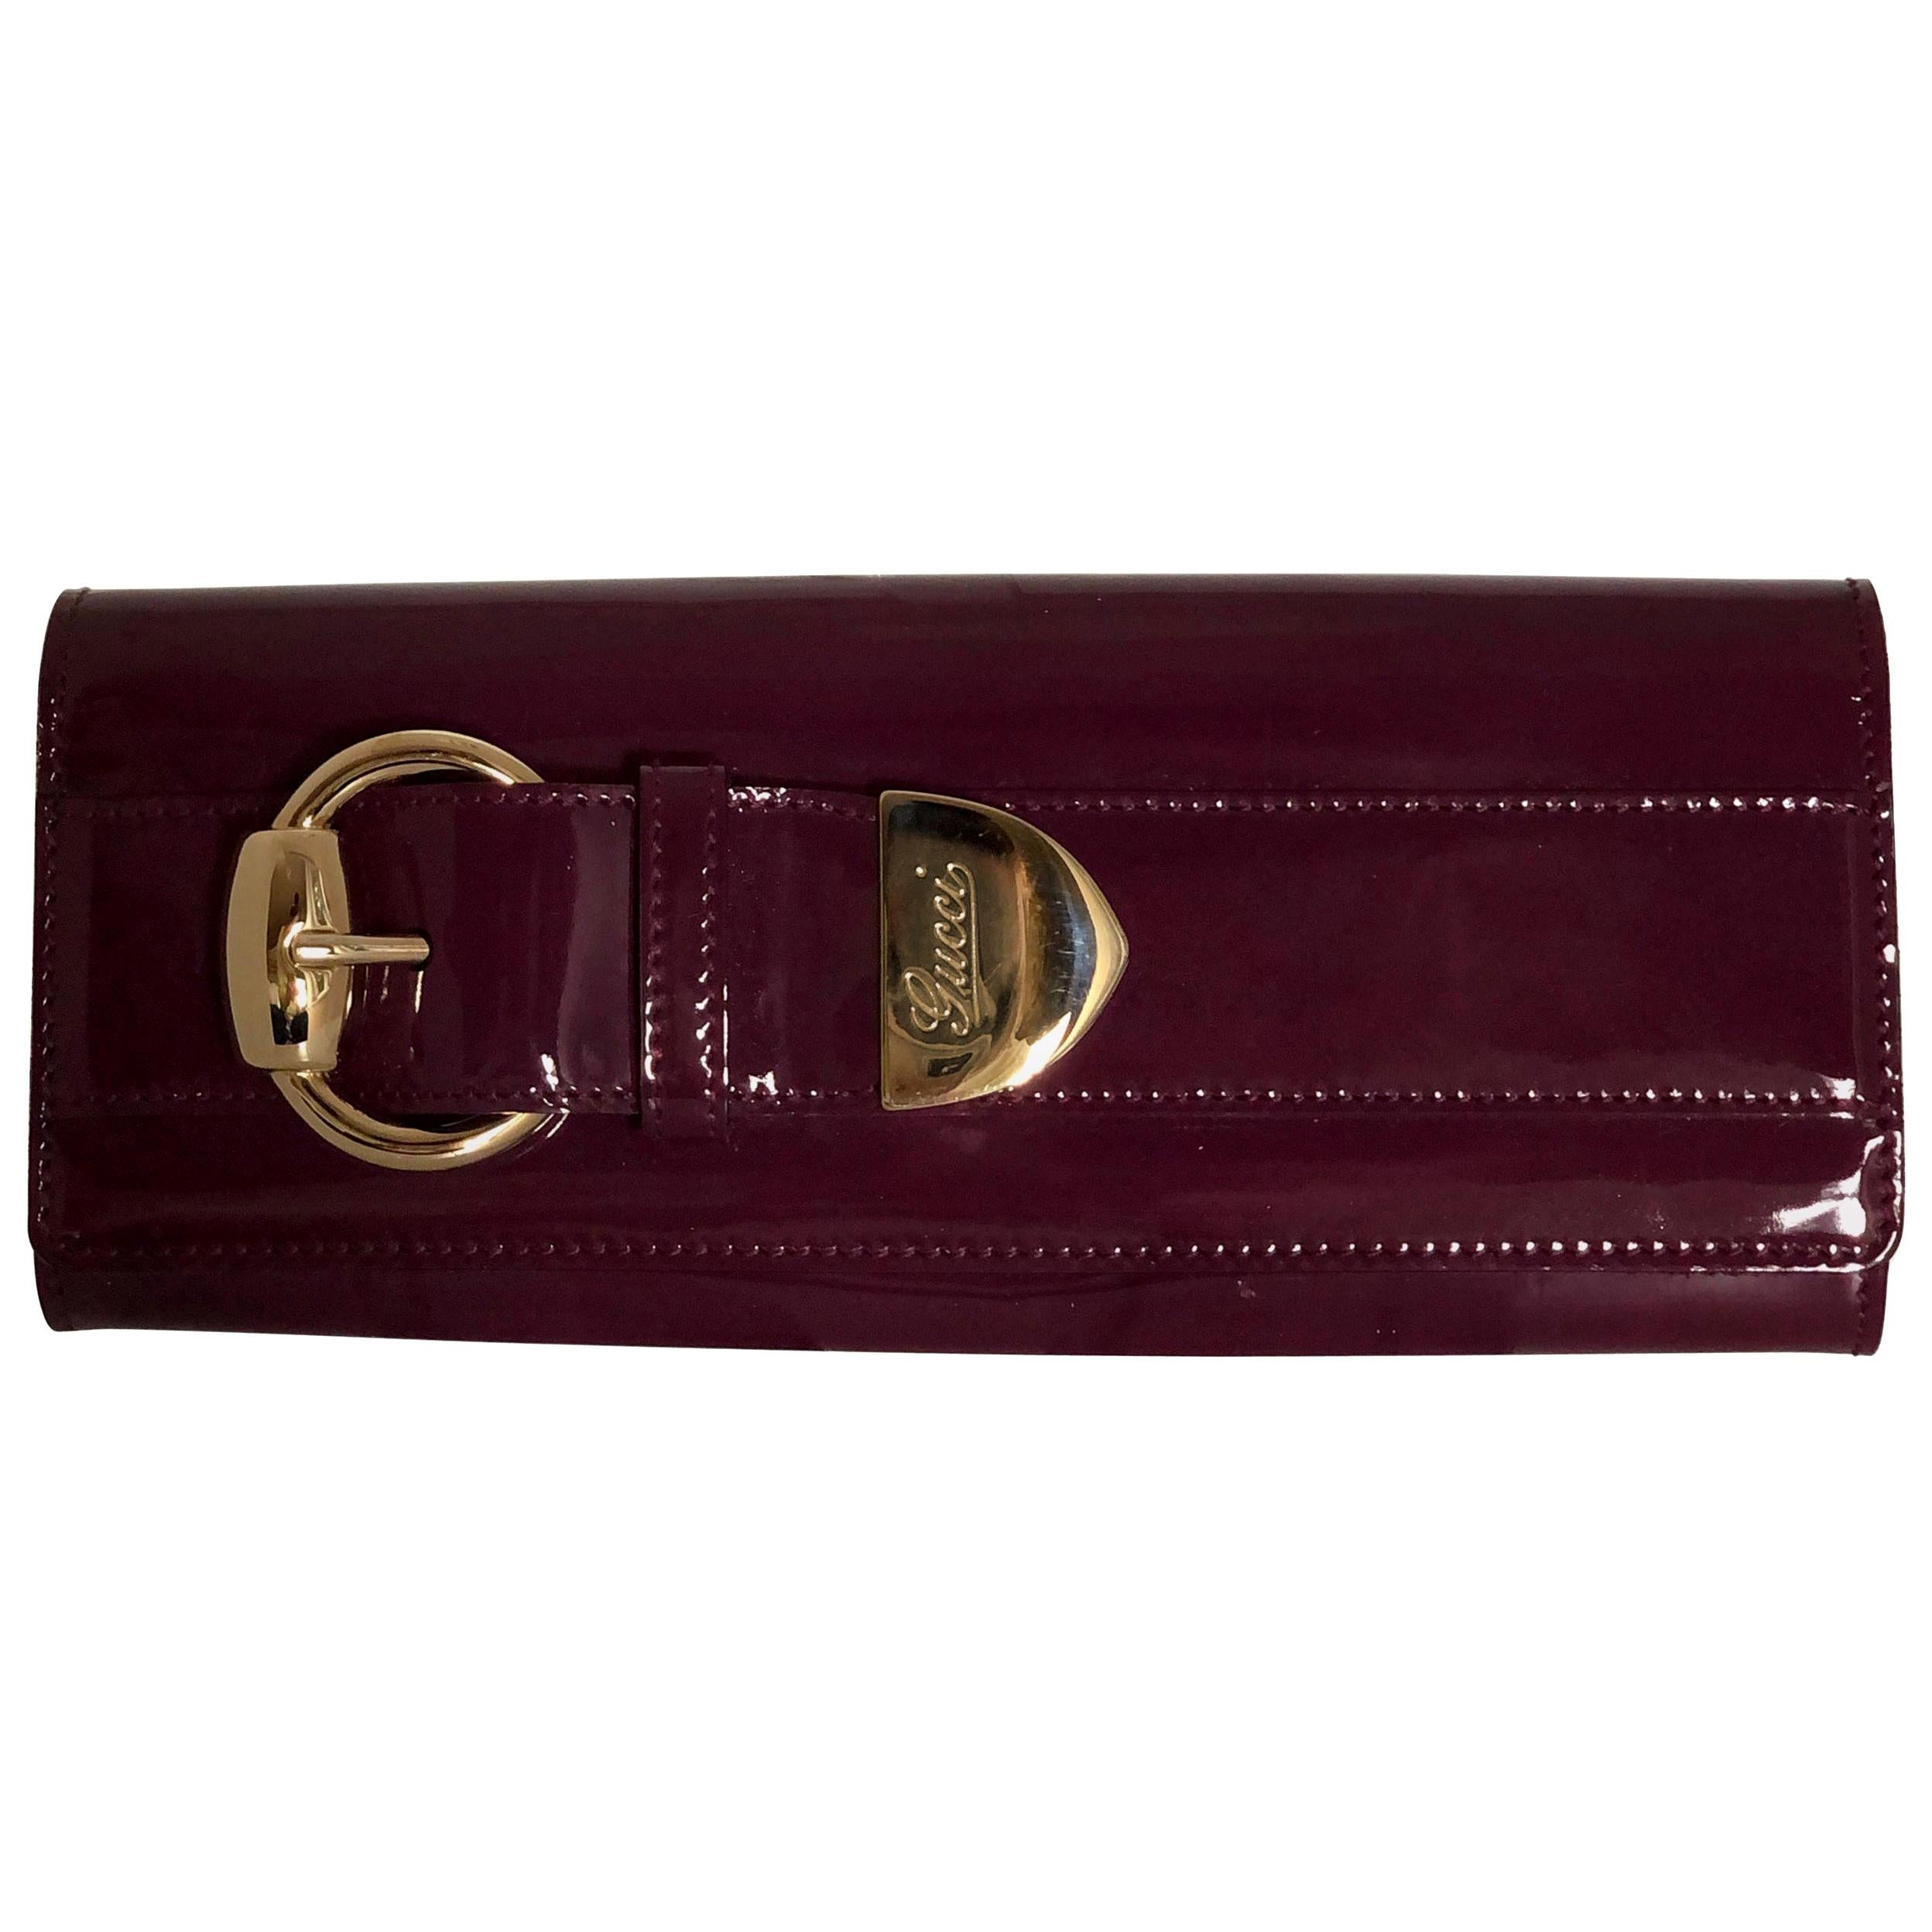 Gucci Pink / Purple Patent Leather Mini Clutch with Gold Metal Insignia Hardware